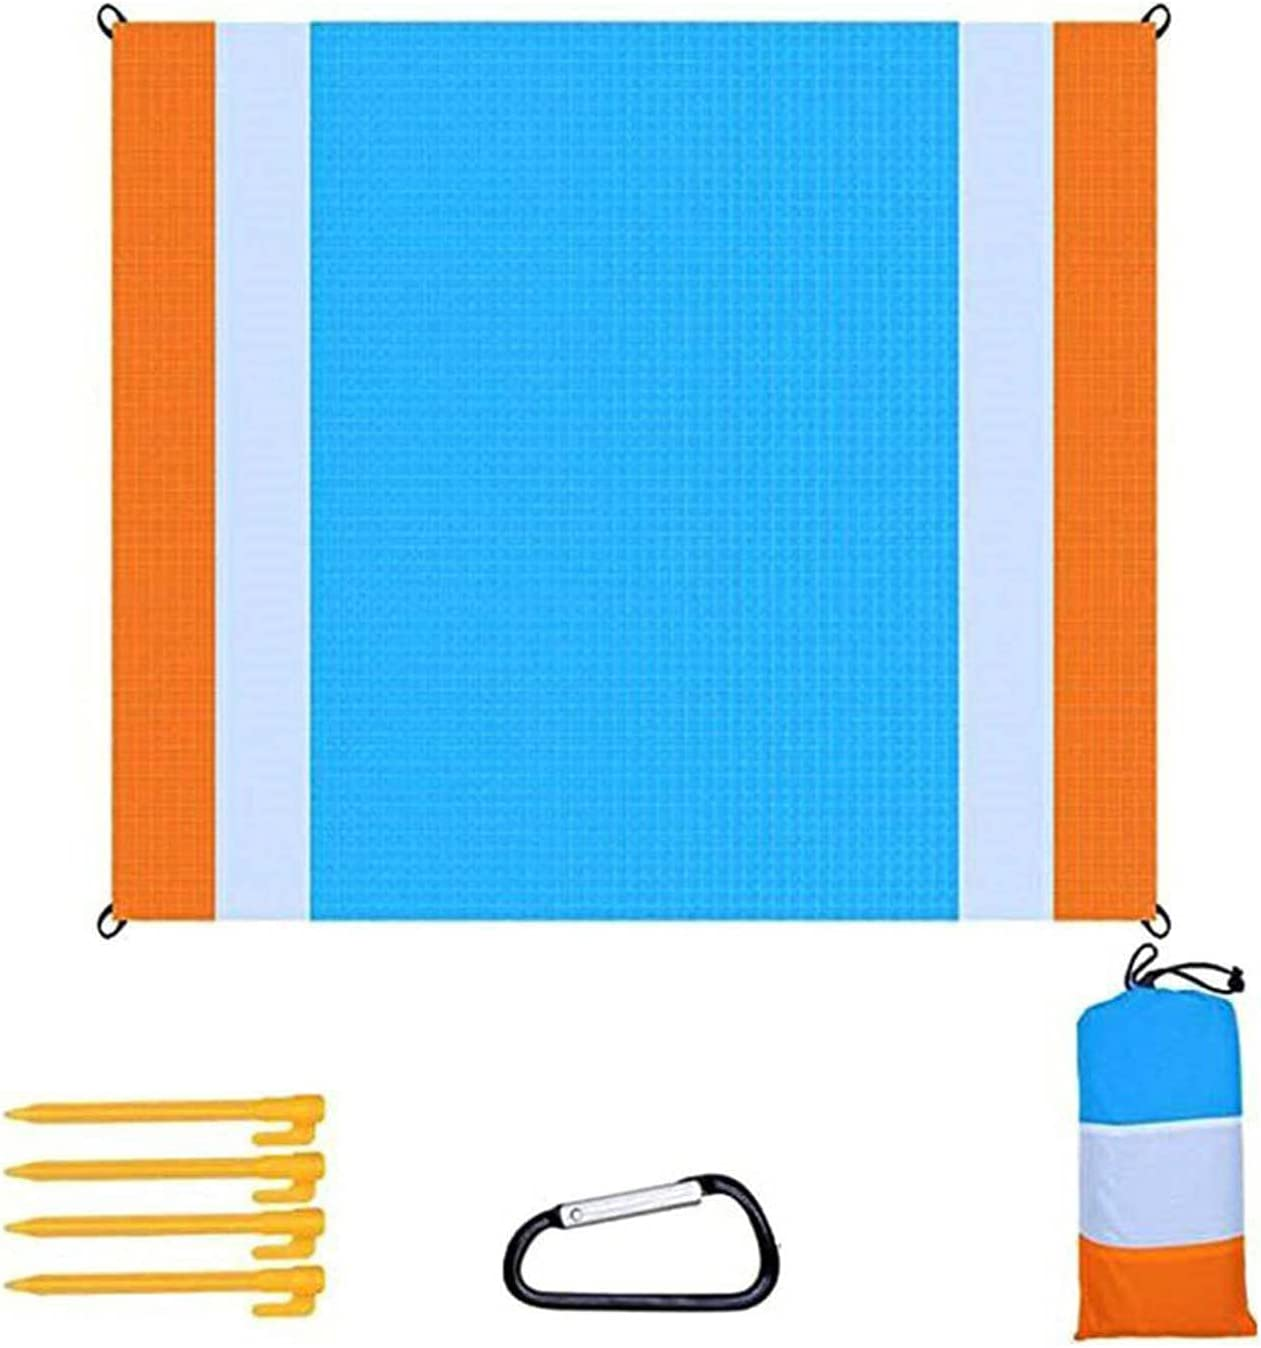 Sales of SALE 4 years warranty items from new works SHUAN Large Beach Mat and Waterproof Sand-Proof Polyester